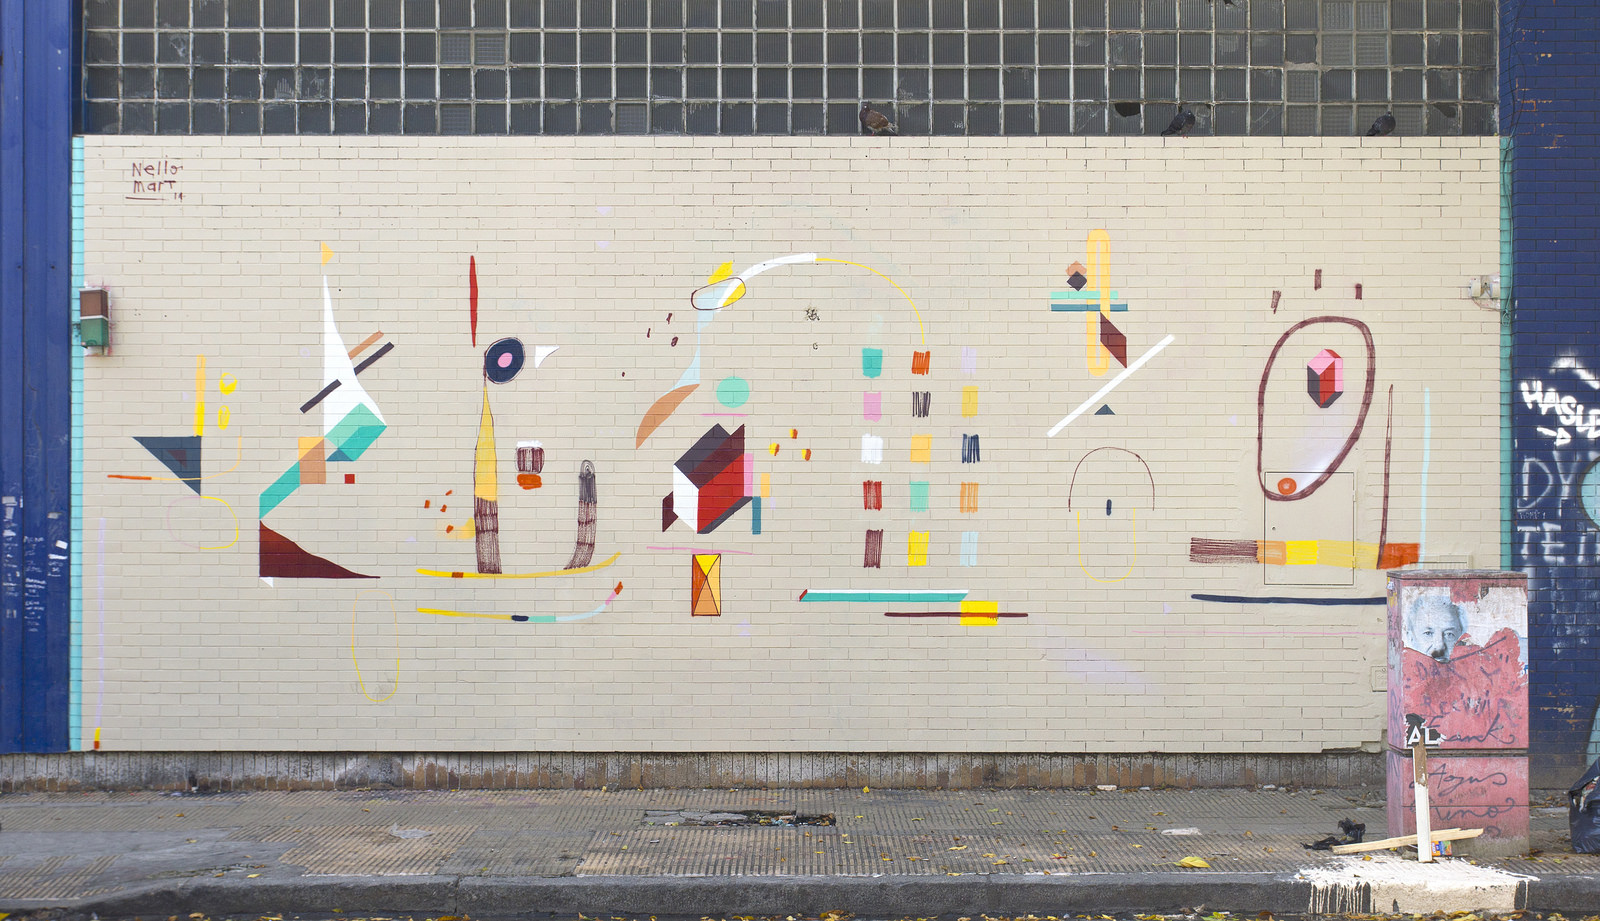 nelio-mart-new-mural-in-palermo-buenos-aires-01